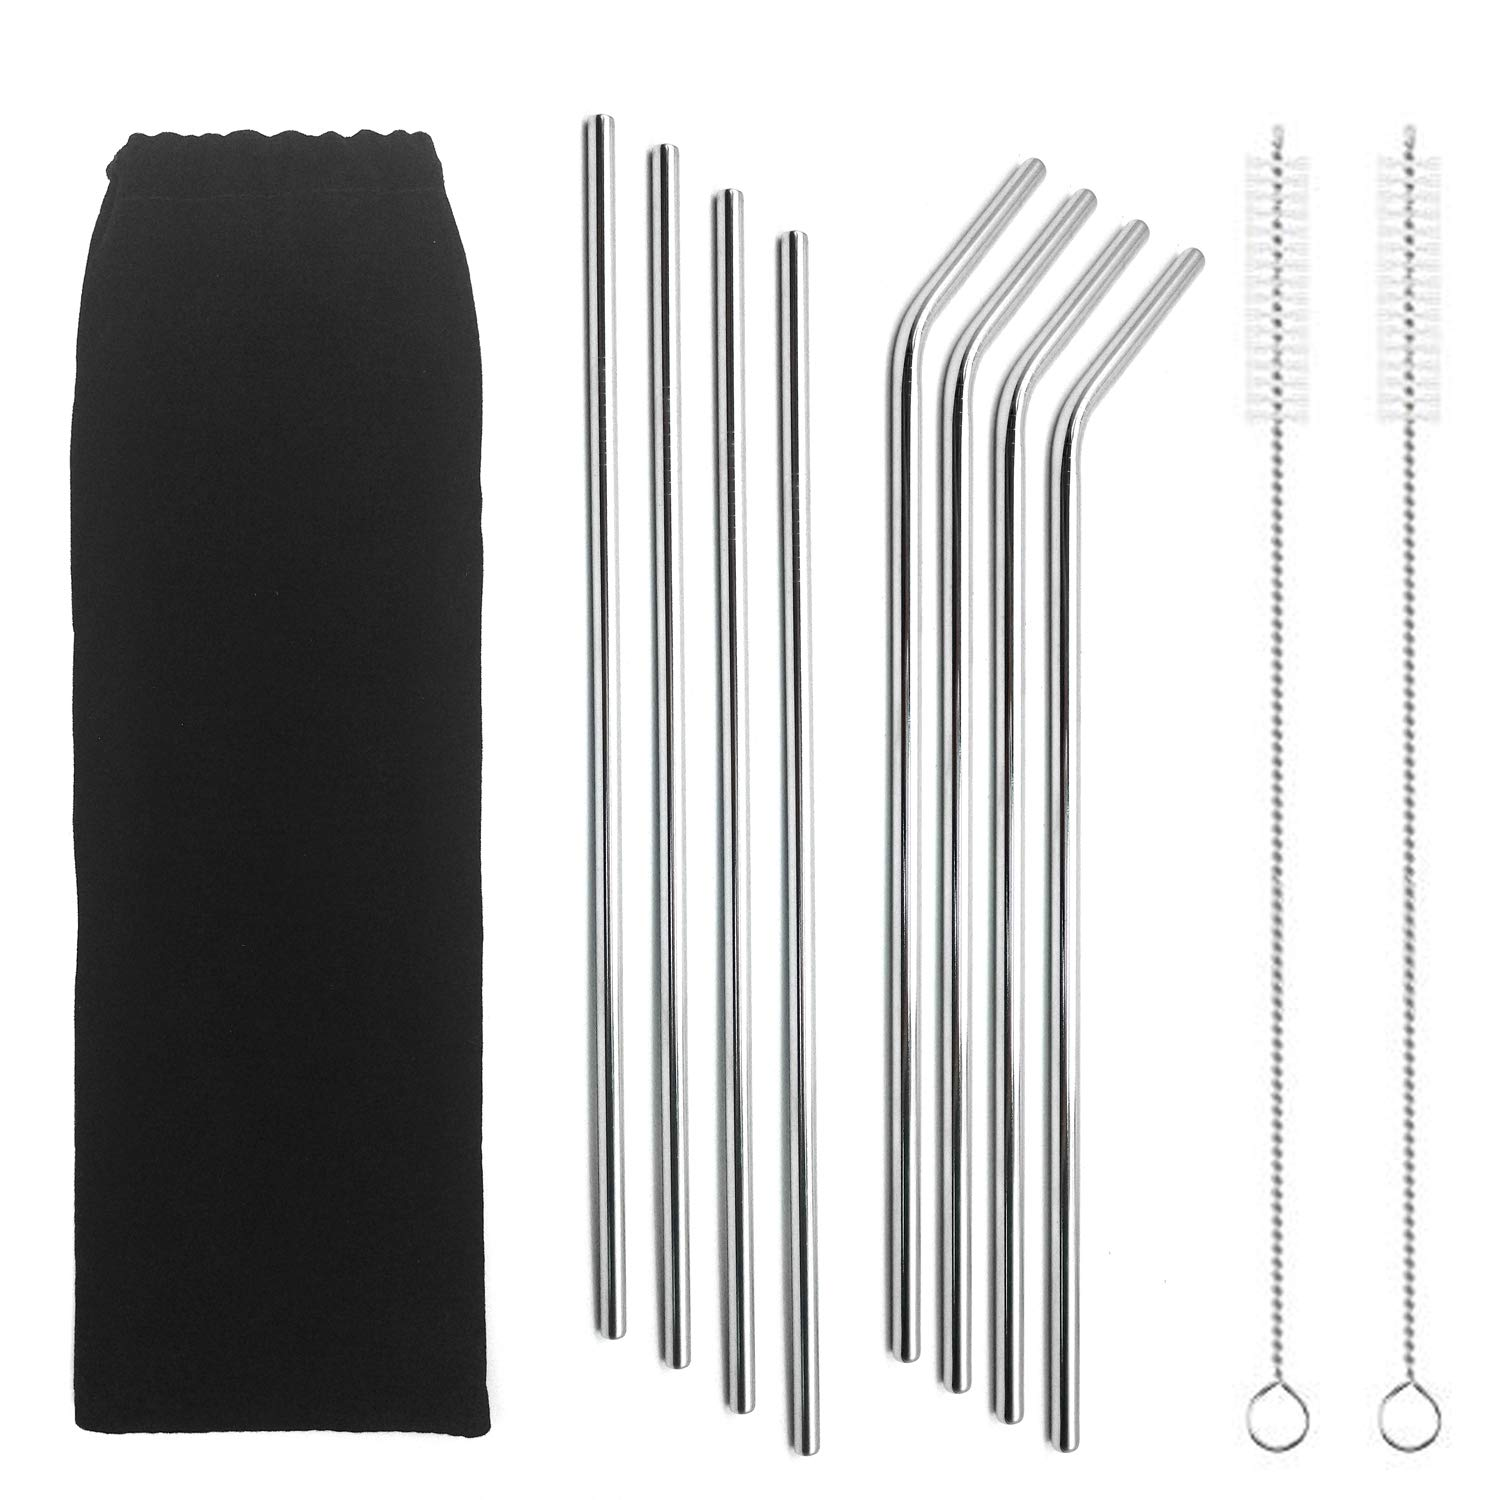 Ultra Long Stainless Steel Straws - Ryan Smith 10.5 Inch Drinking Metal Straws for Tumblers Rumblers Cold Beverage - 4 Straight 4 Bent 2 Brushes